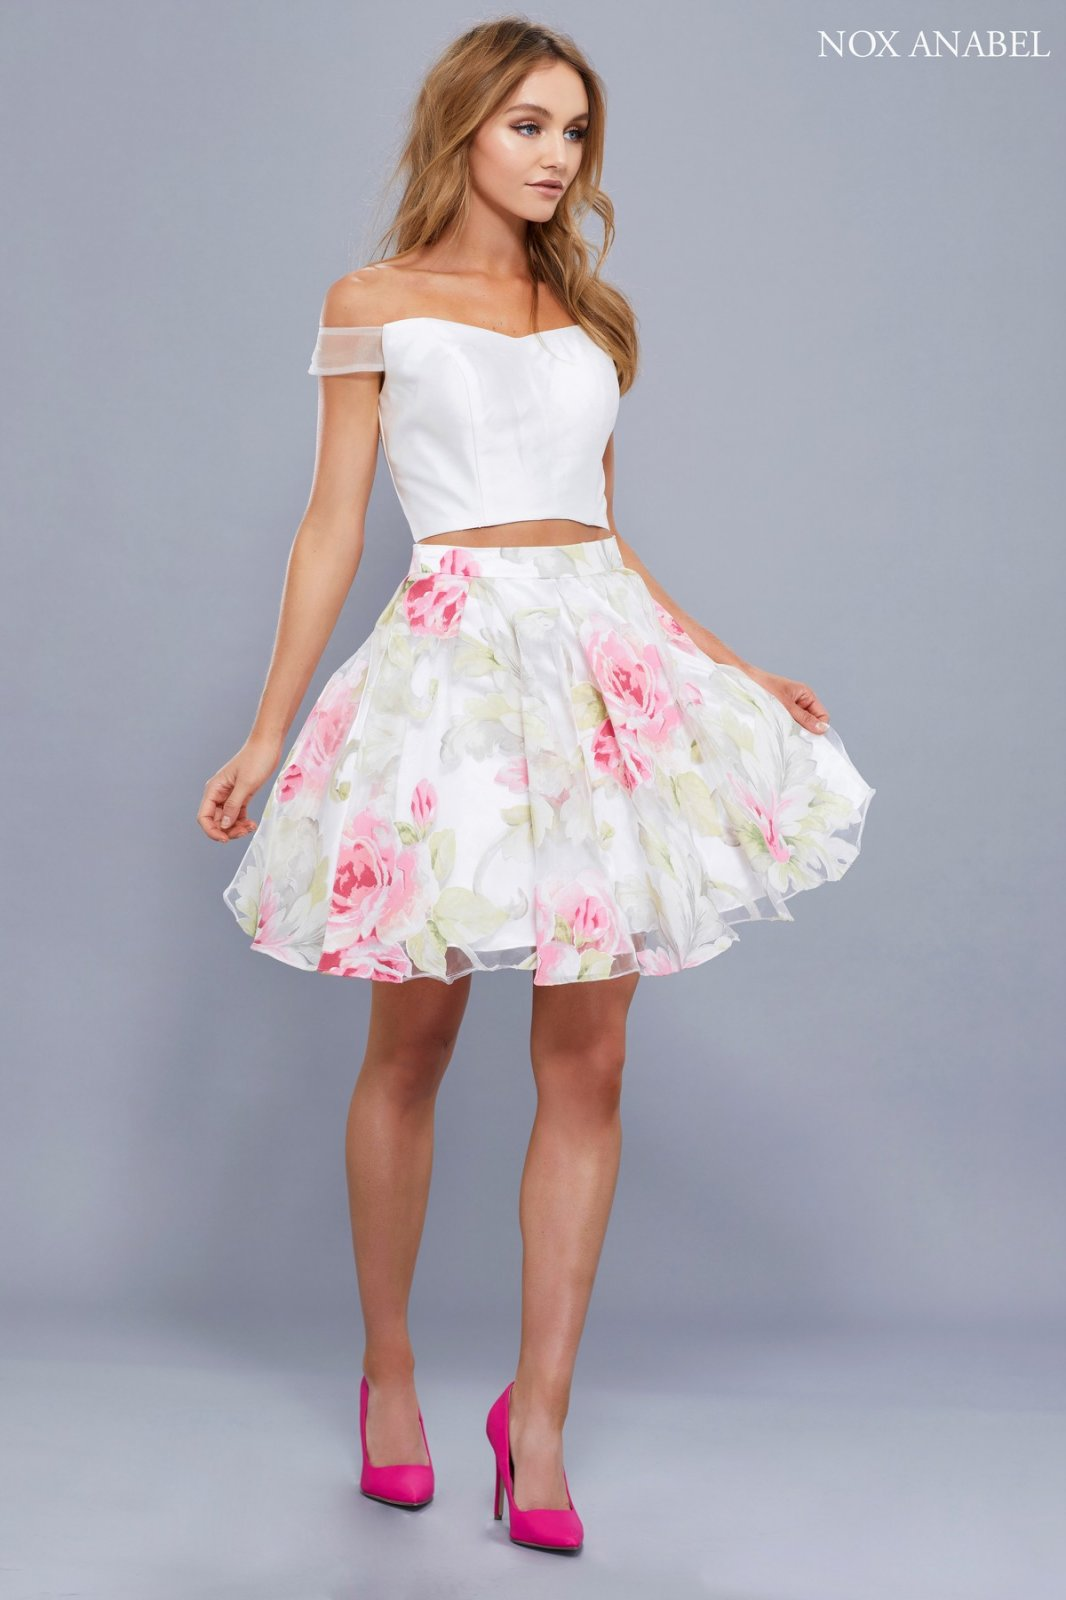 Two Piece White Off The Shoulders Top With Floral Skirt